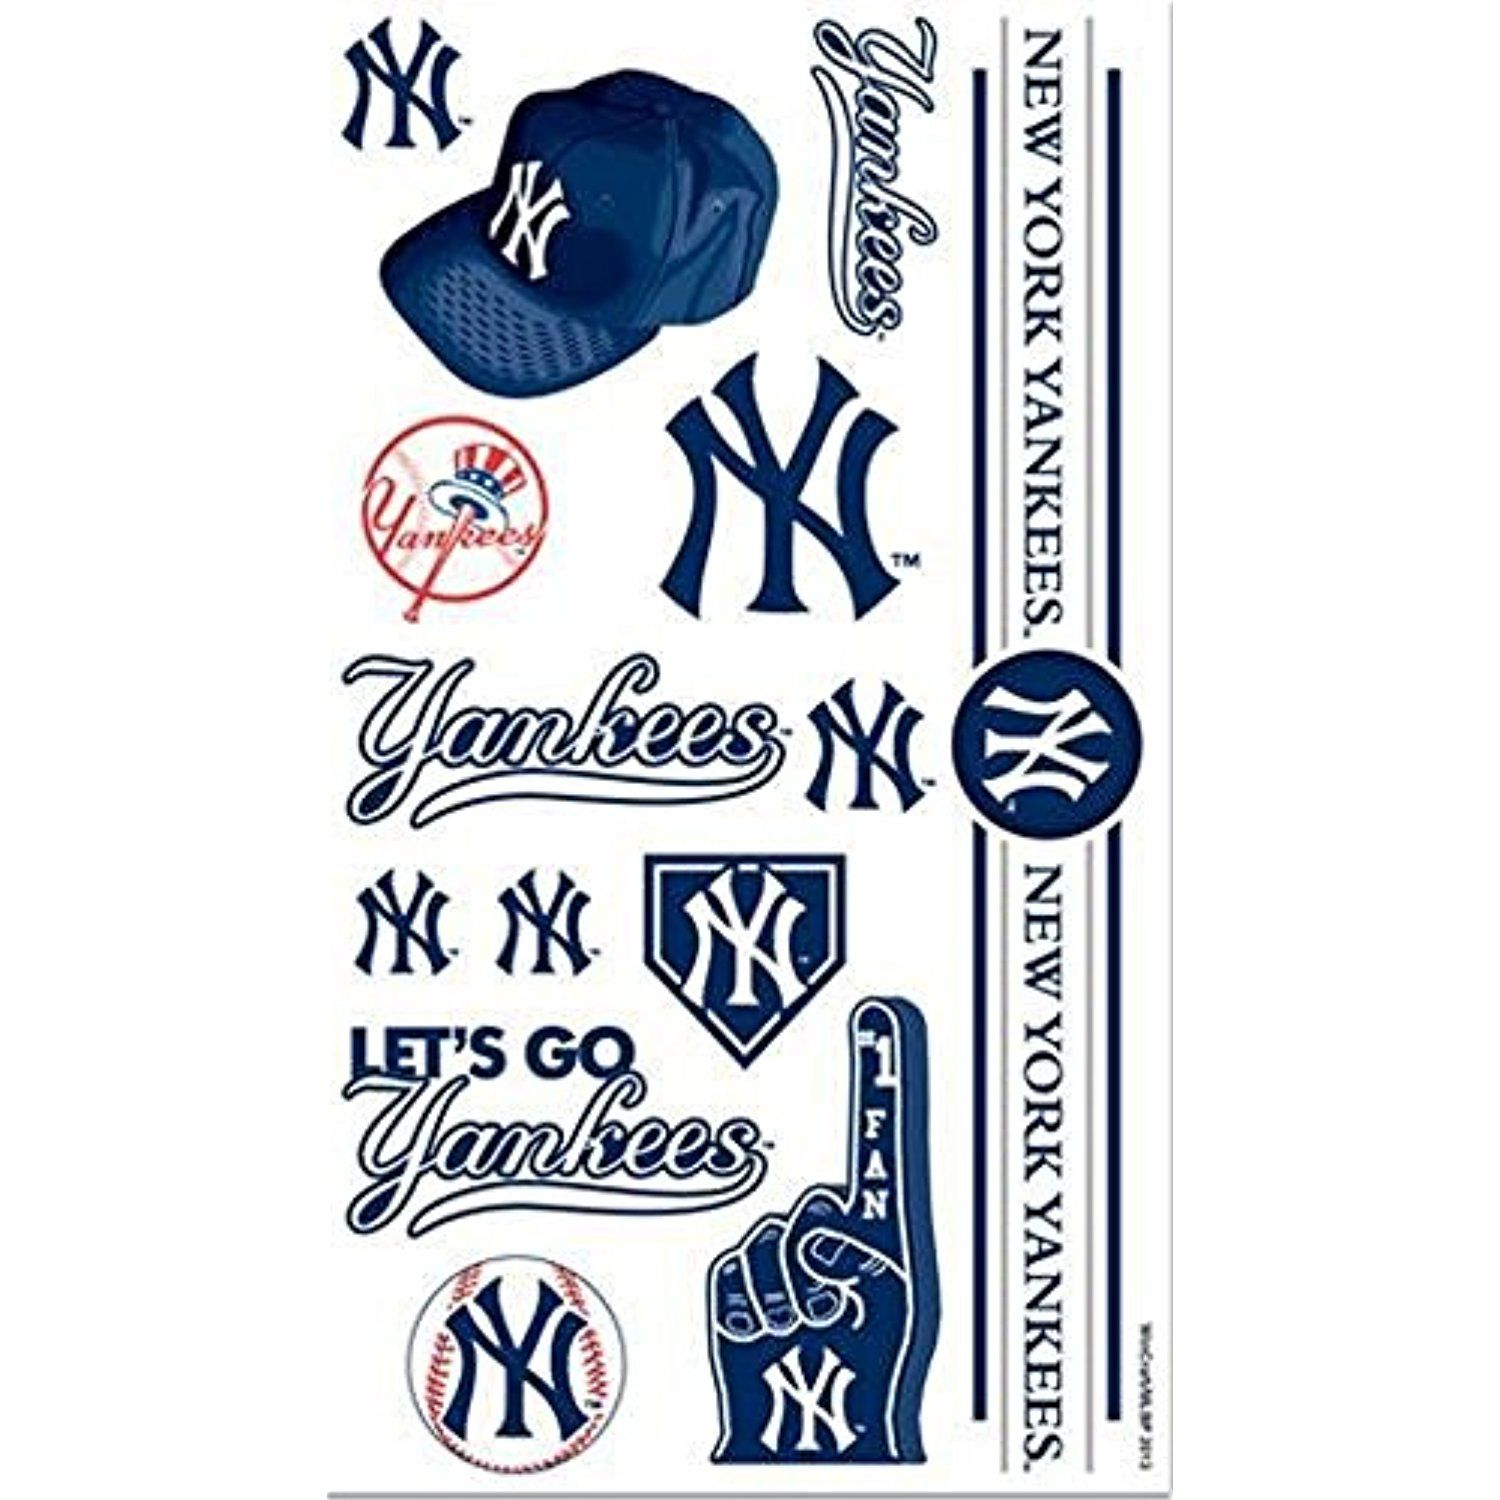 New york yankees tattoos click image for more details